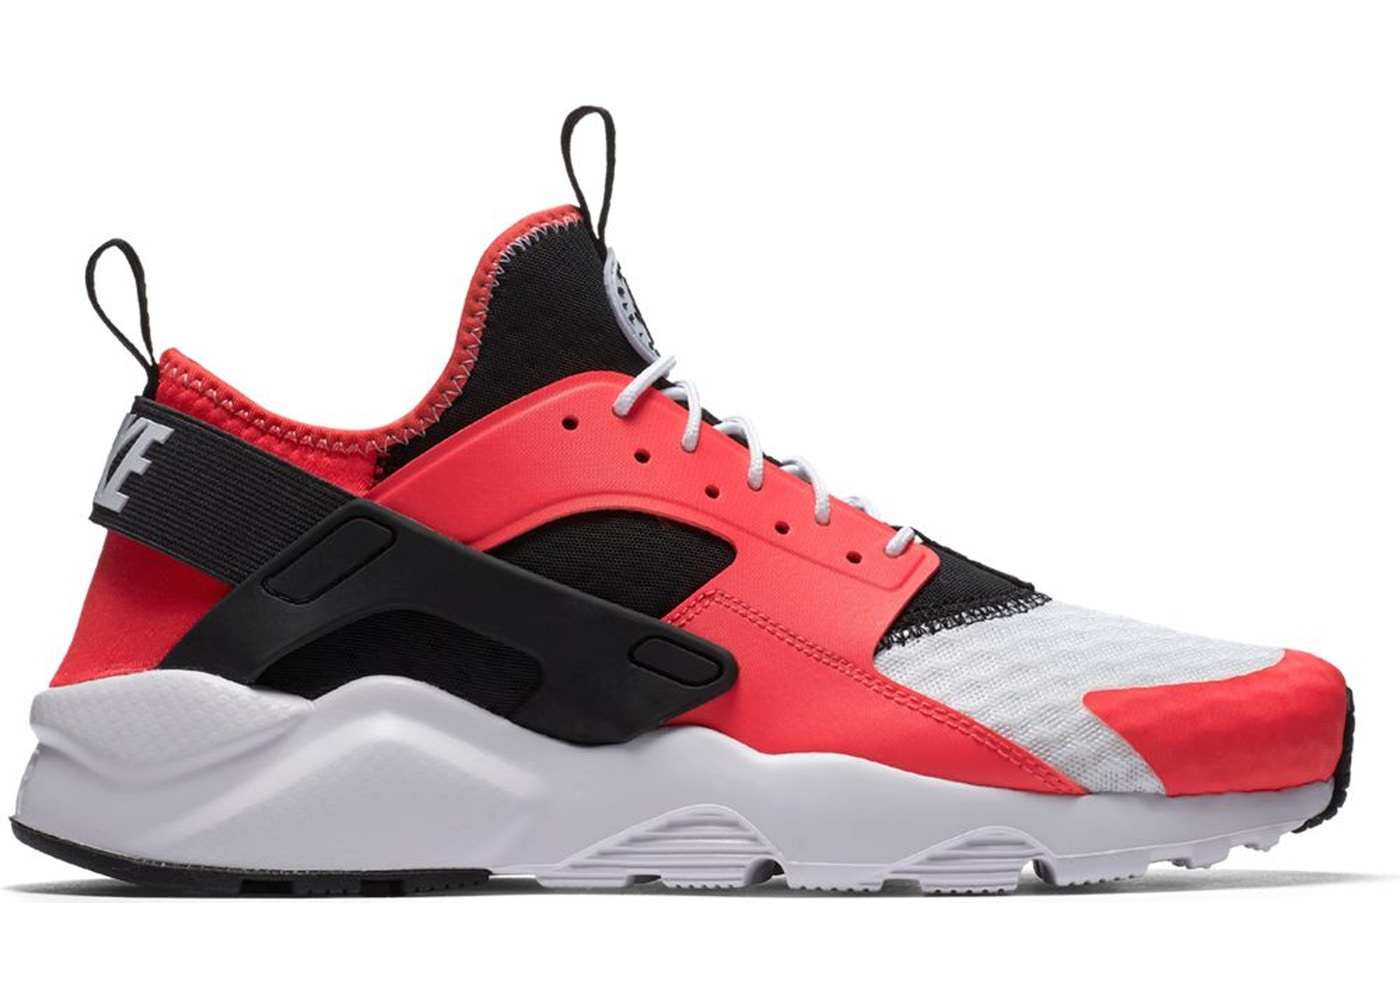 newest 55544 b645f Sell. or Ask. Size 7. View All Bids. Air Huarache Run Ultra Siren Red